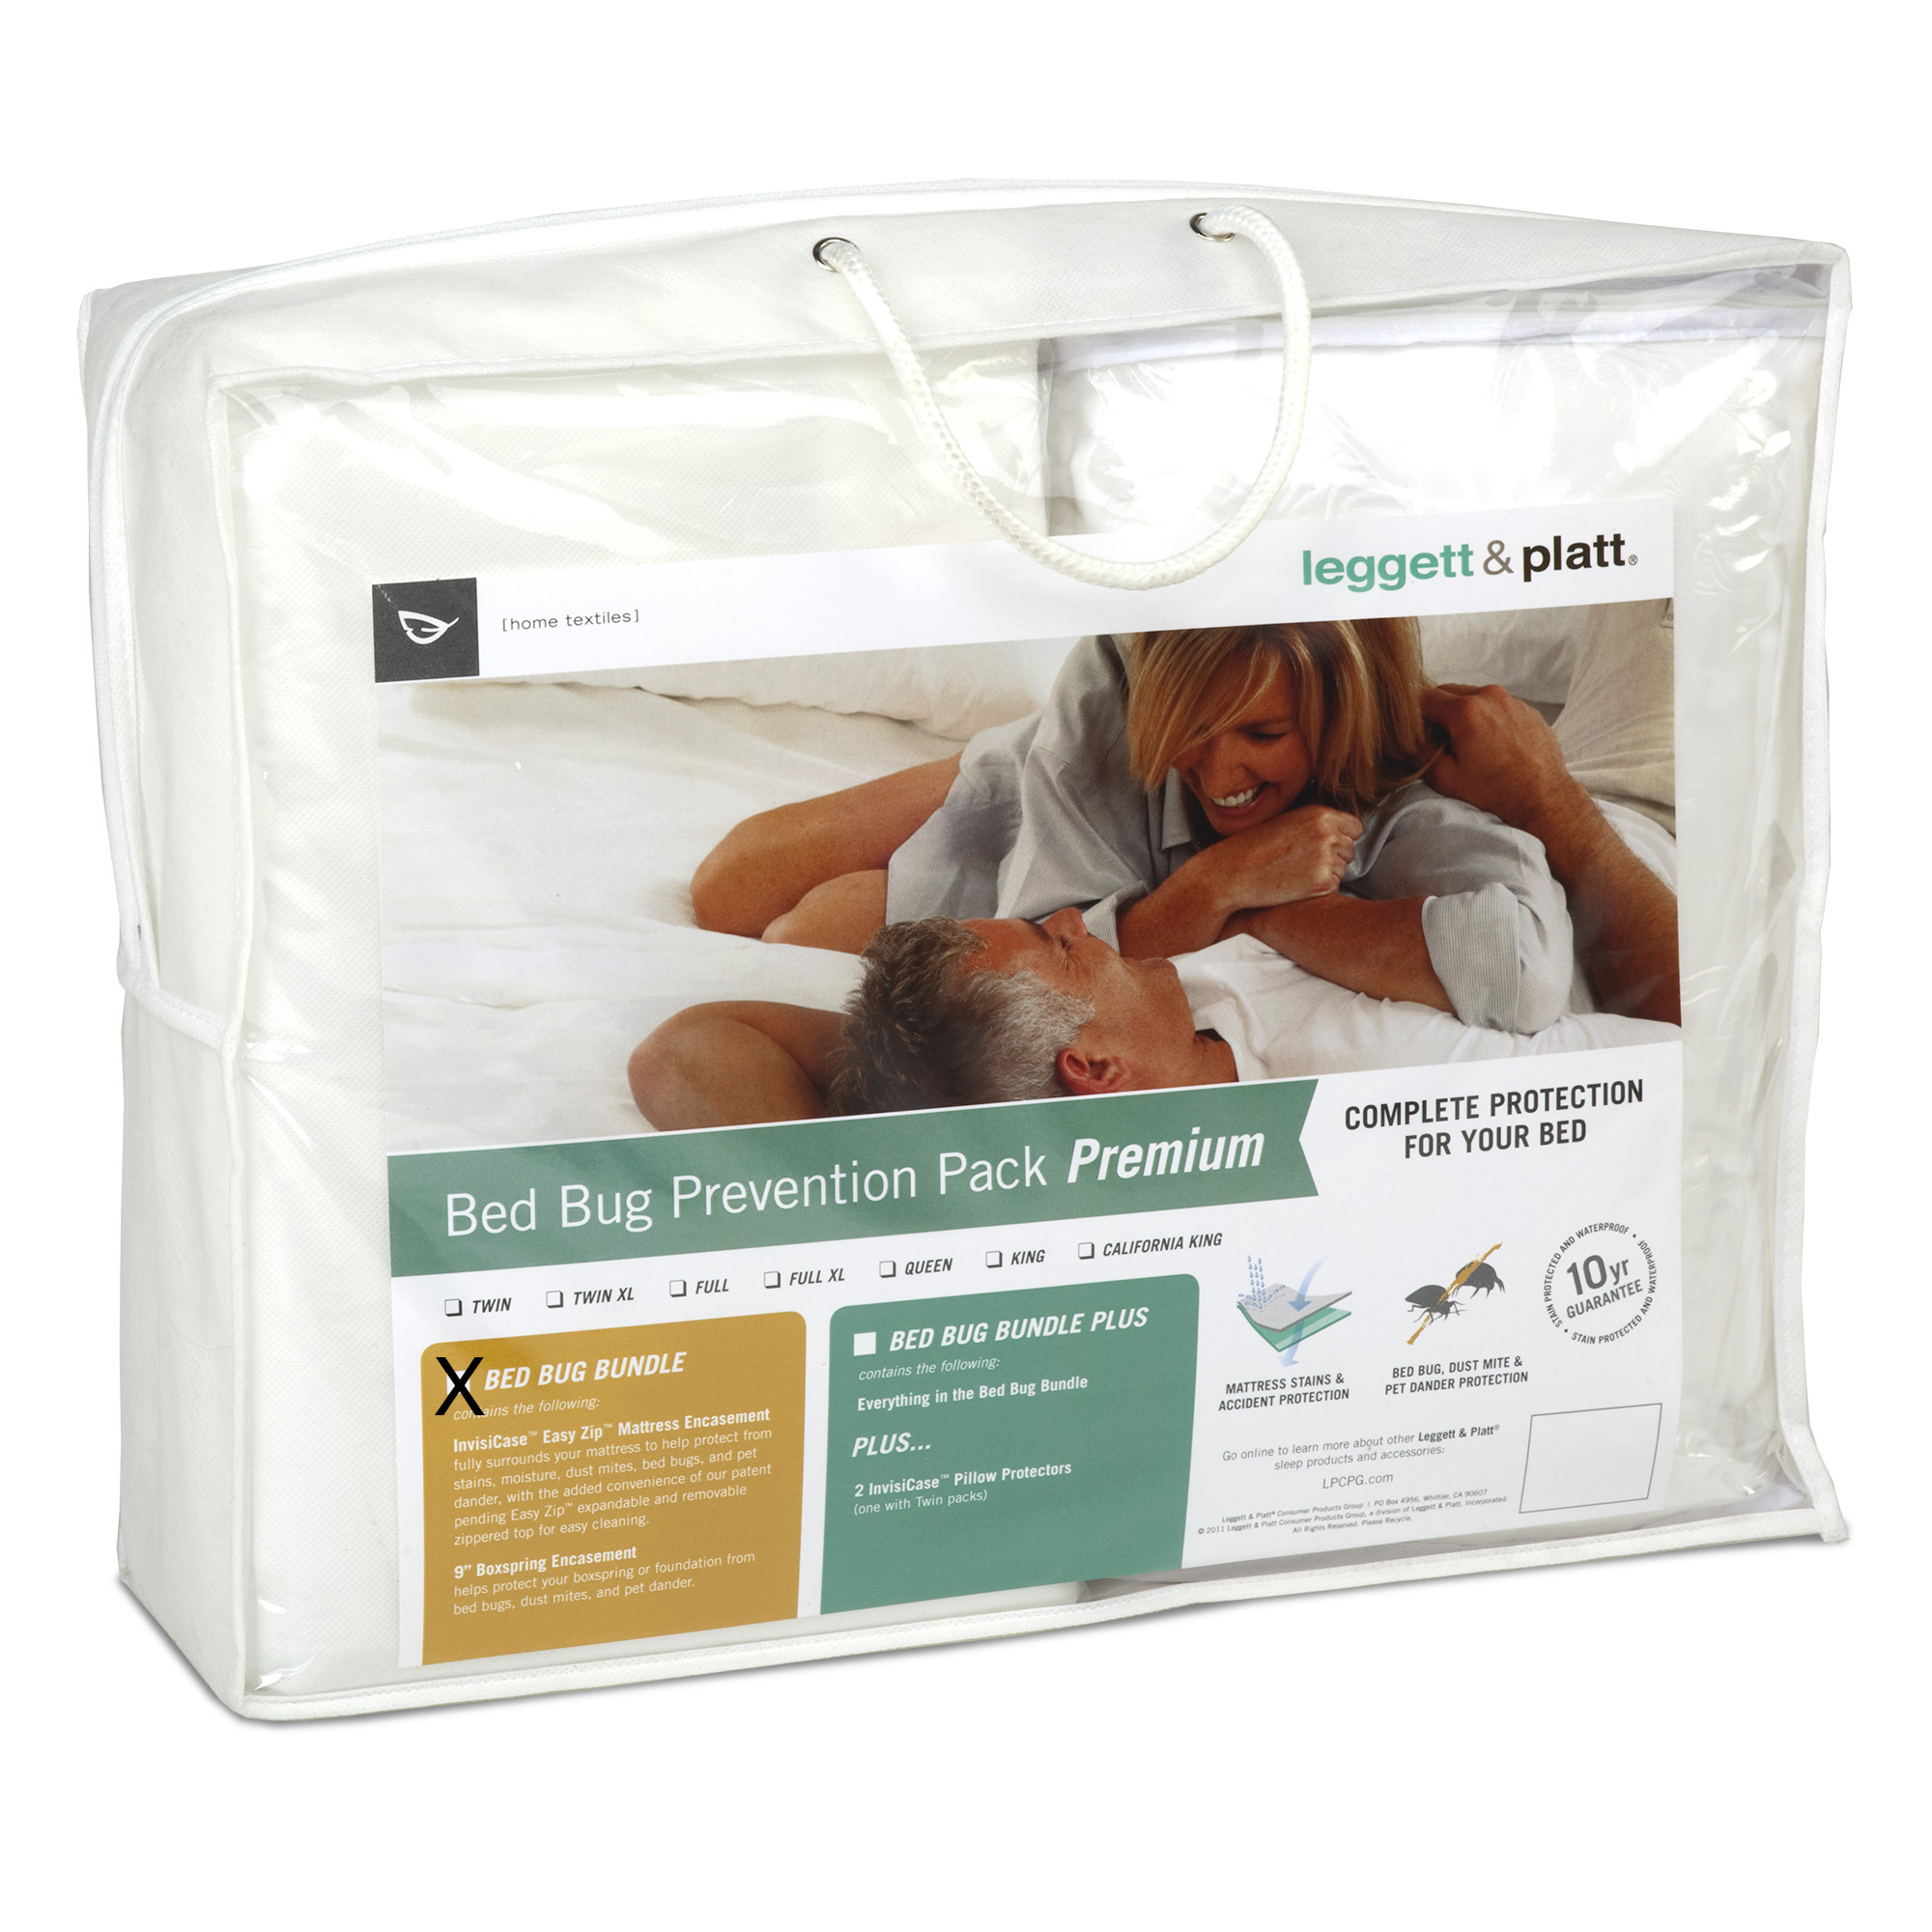 SleepSense 2-Piece Premium Bed Bug Prevention Pack with InvisiCase Easy Zip Mattress and Box Spring Encasement Bundle, Full XL